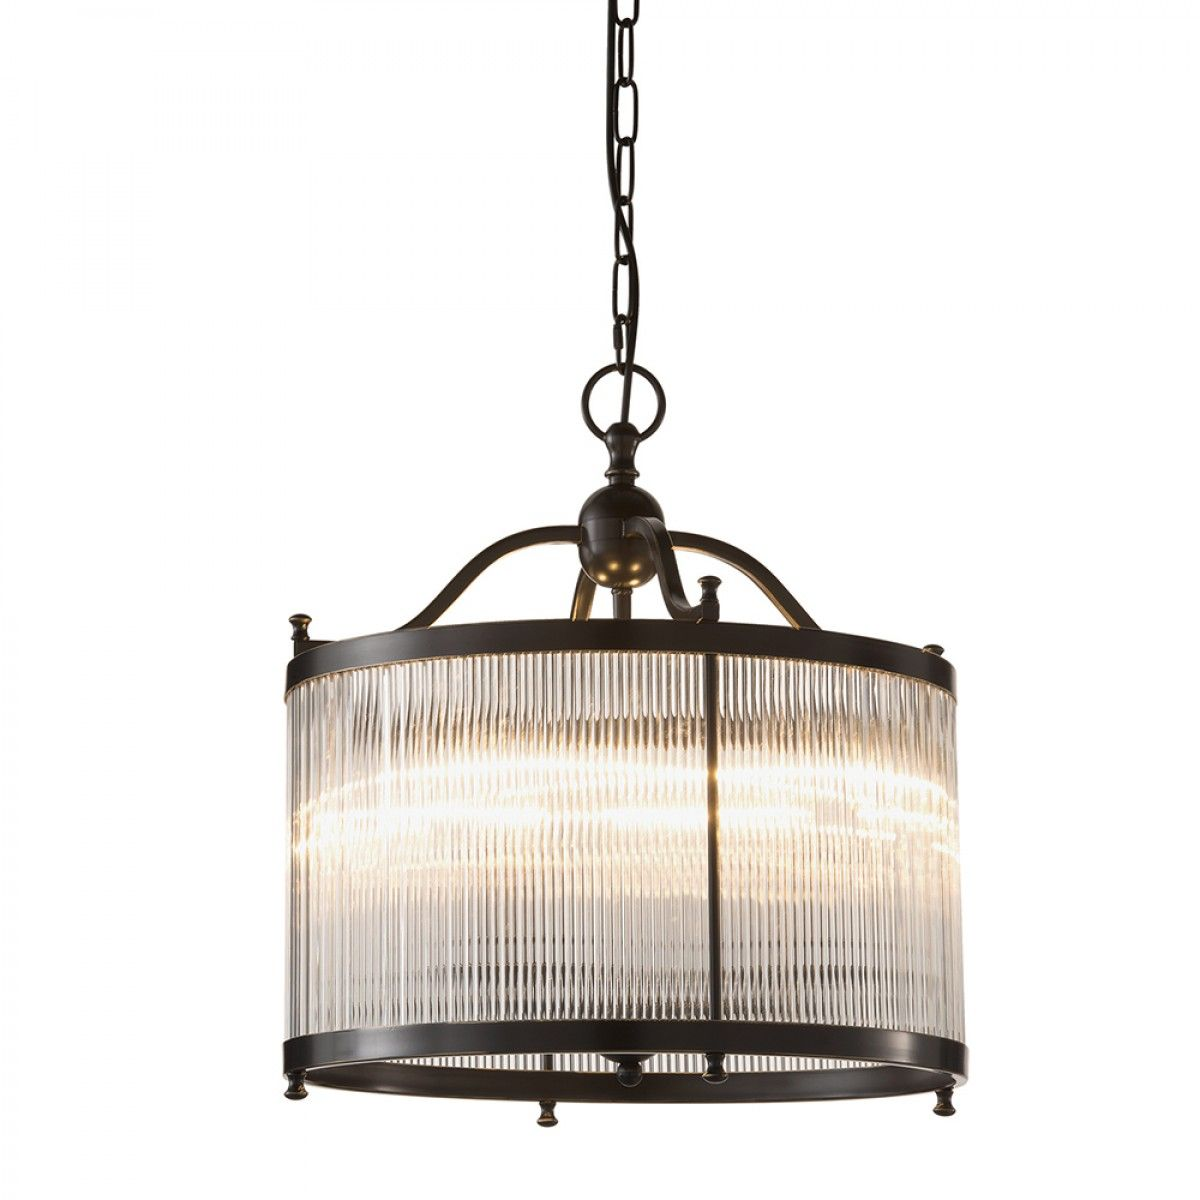 Empire 4 Light Pendant - Pendant Lights - Lighting & Fans | Lights ...